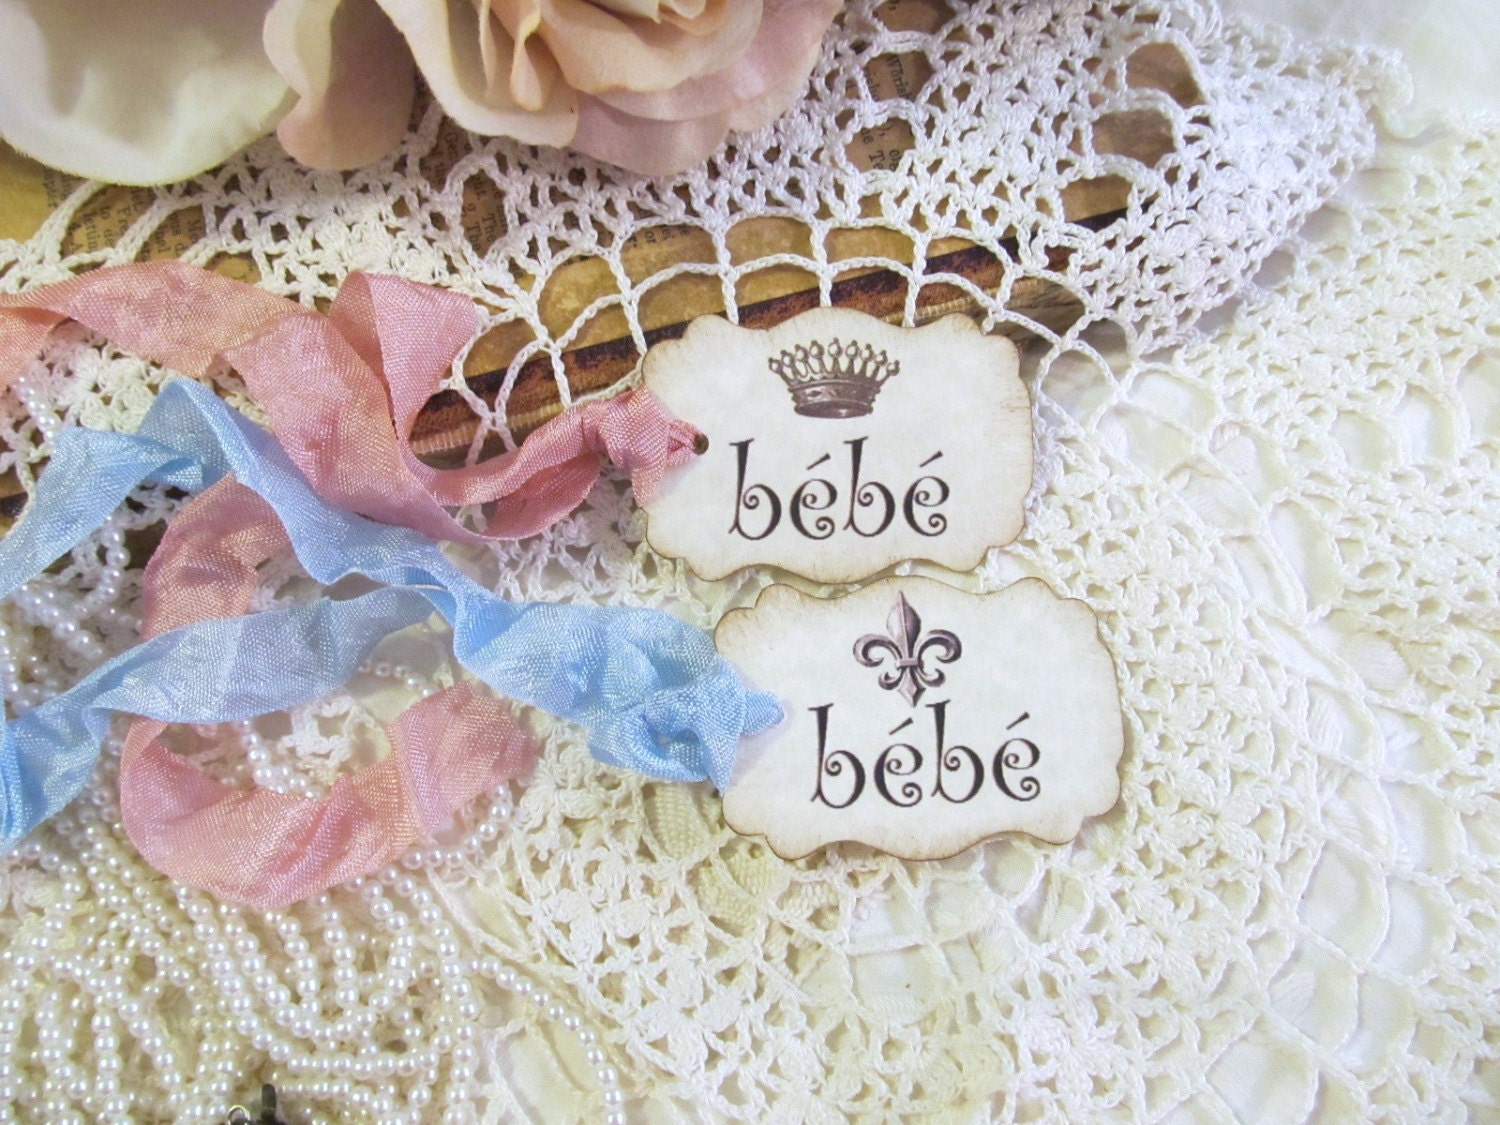 French Baby Gifts Australia : French baby bebe shower favor tags with ribbons set of